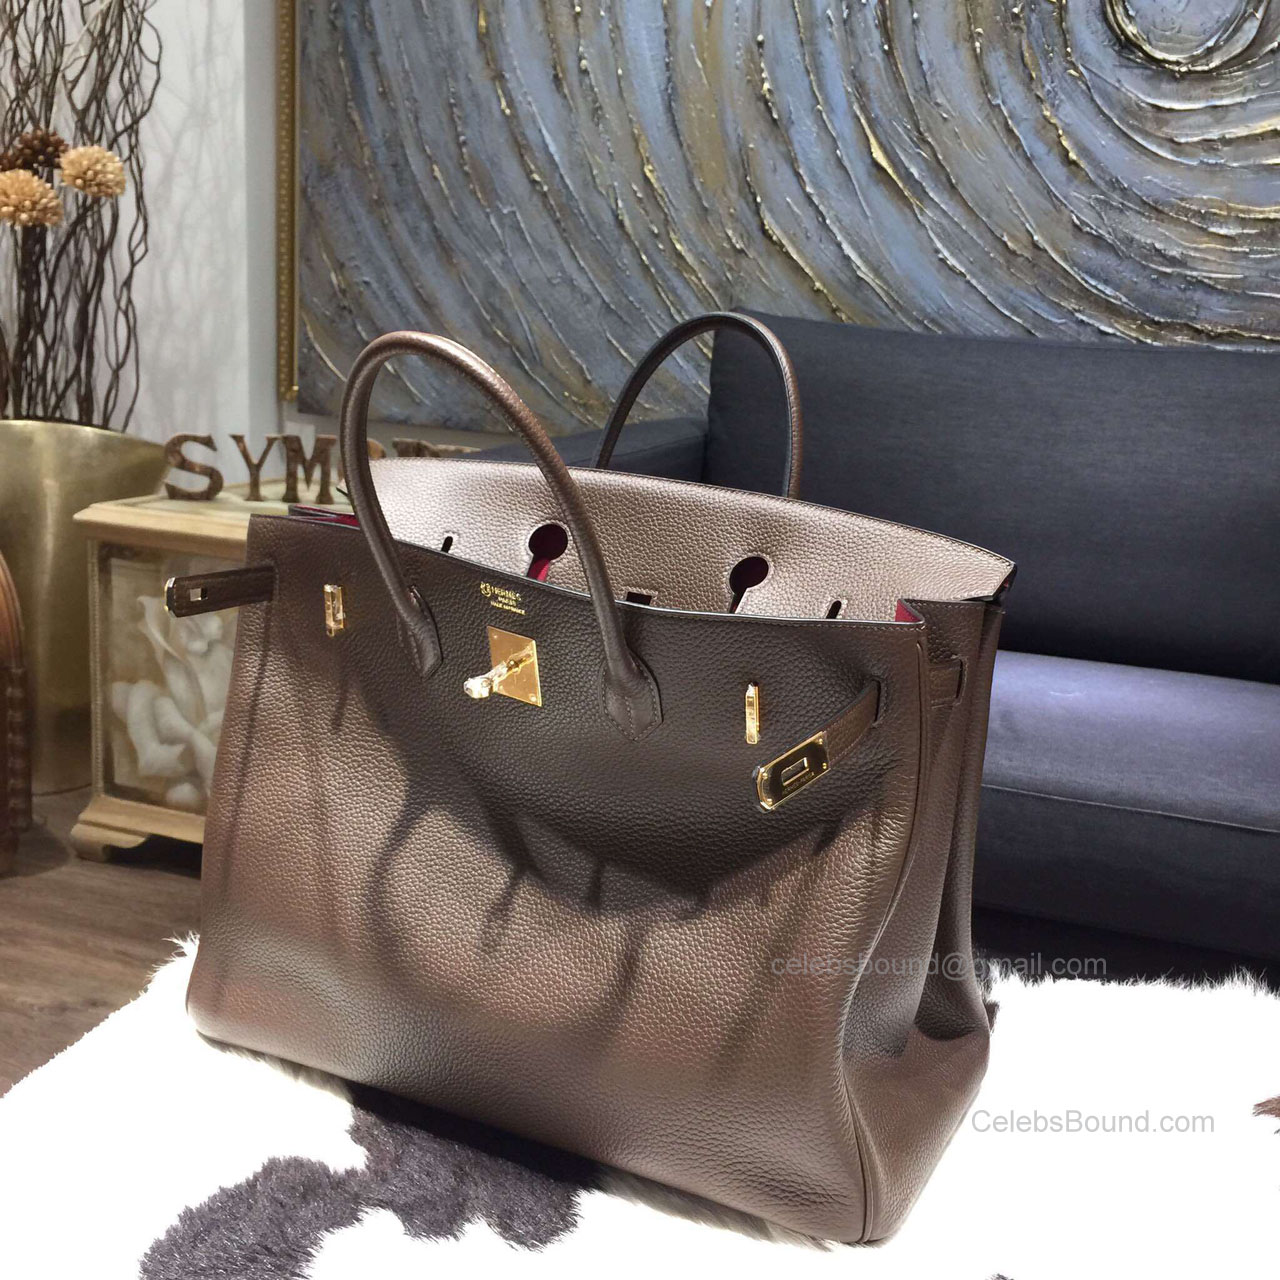 4129c0c37d Hermes Birkin 40 Bag Bi-color Chocolat Togo Leather Handstitched Gold hw